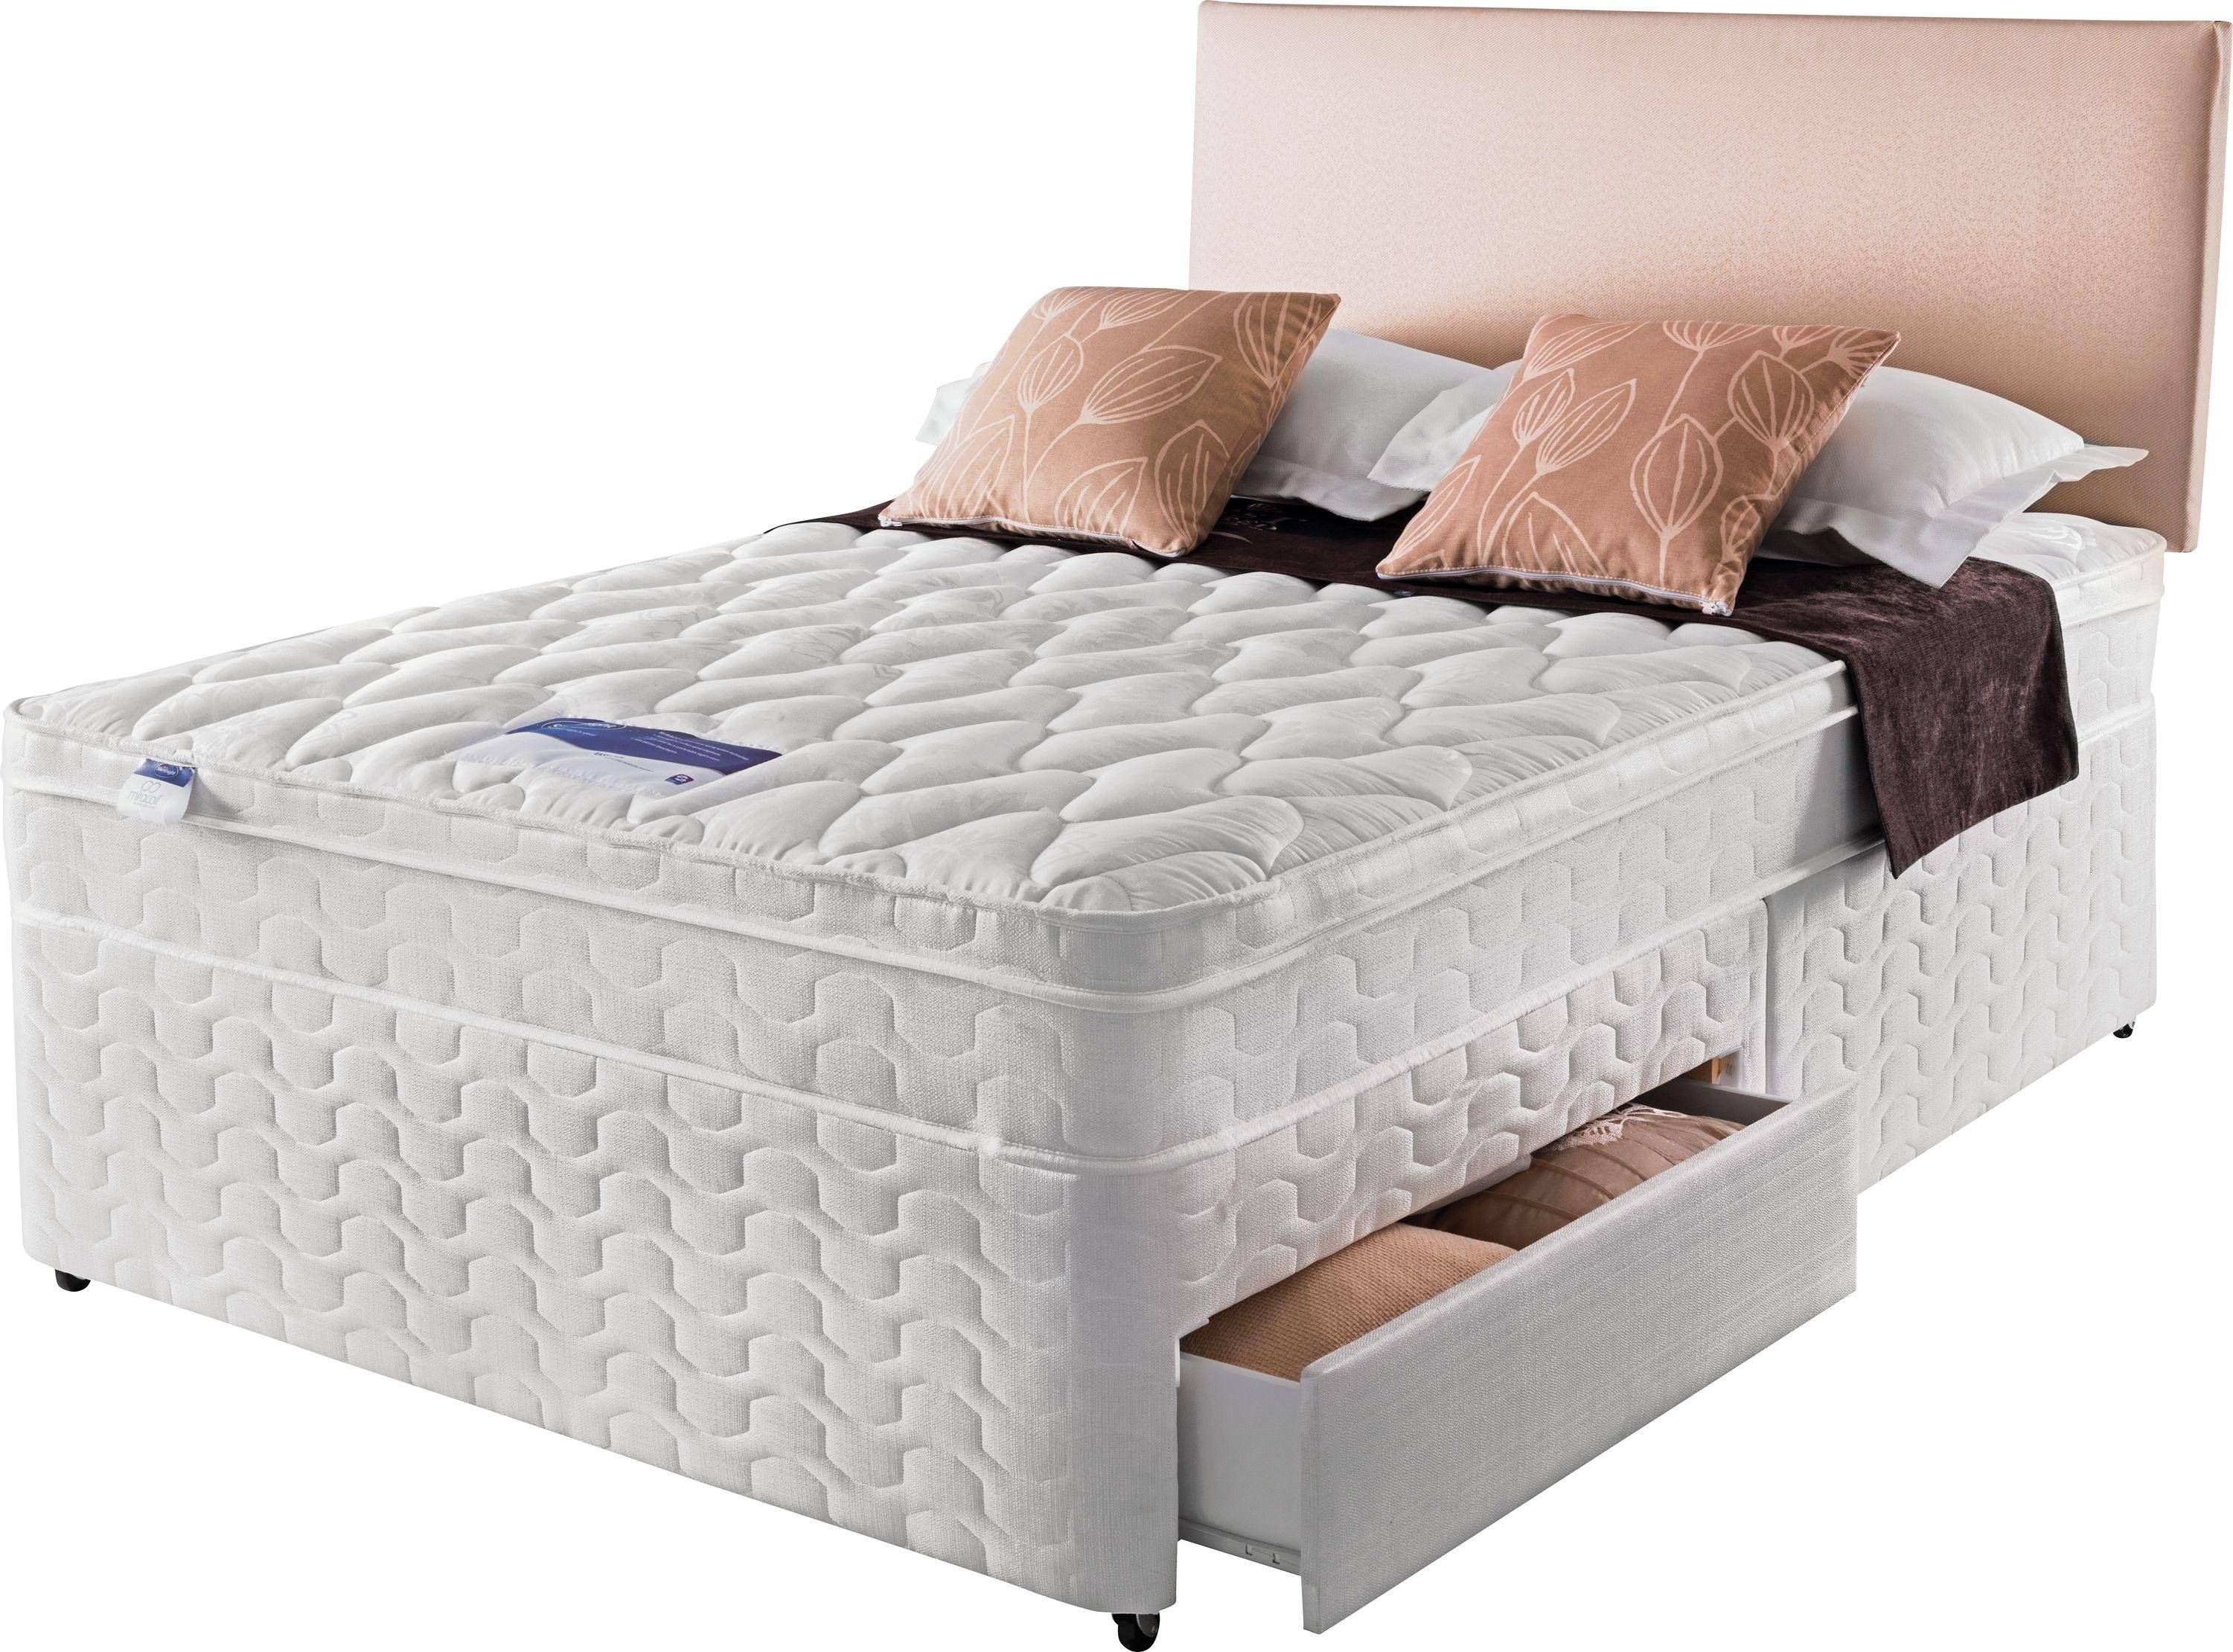 Silentnight Auckland Luxury Small Double Divan Bed 4 Drw